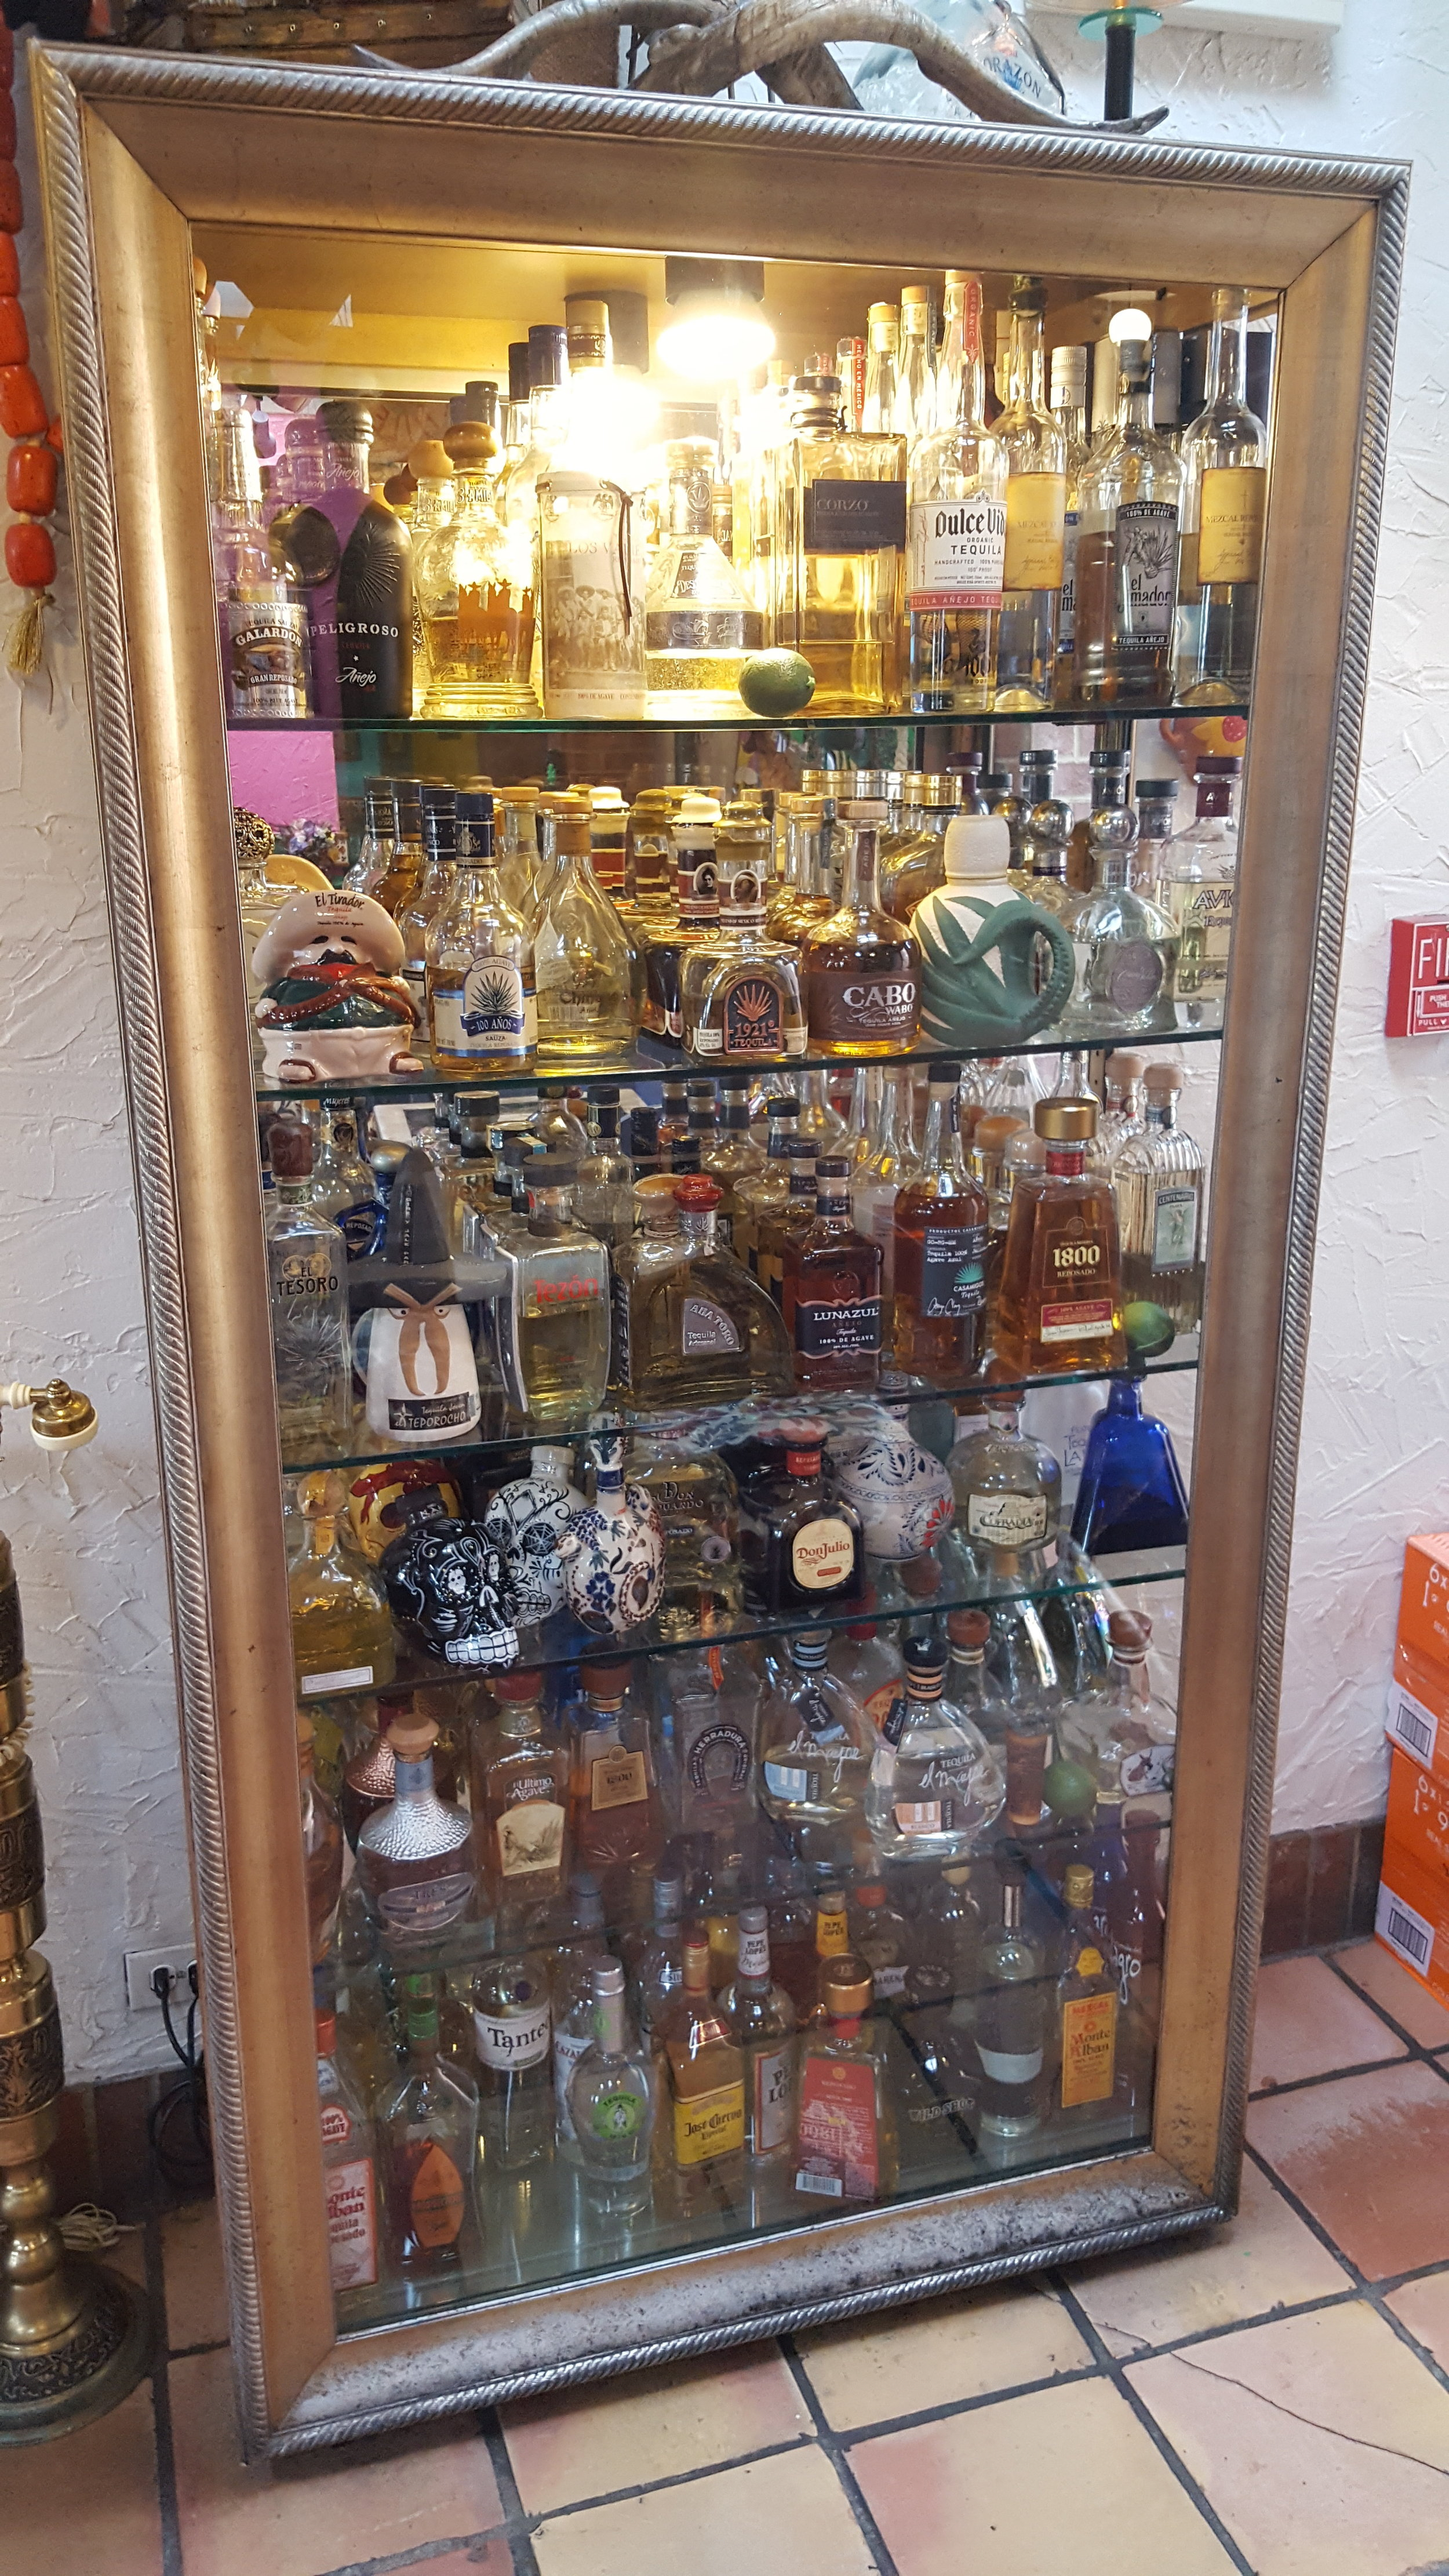 One of 3 or 4 tequila display cases.